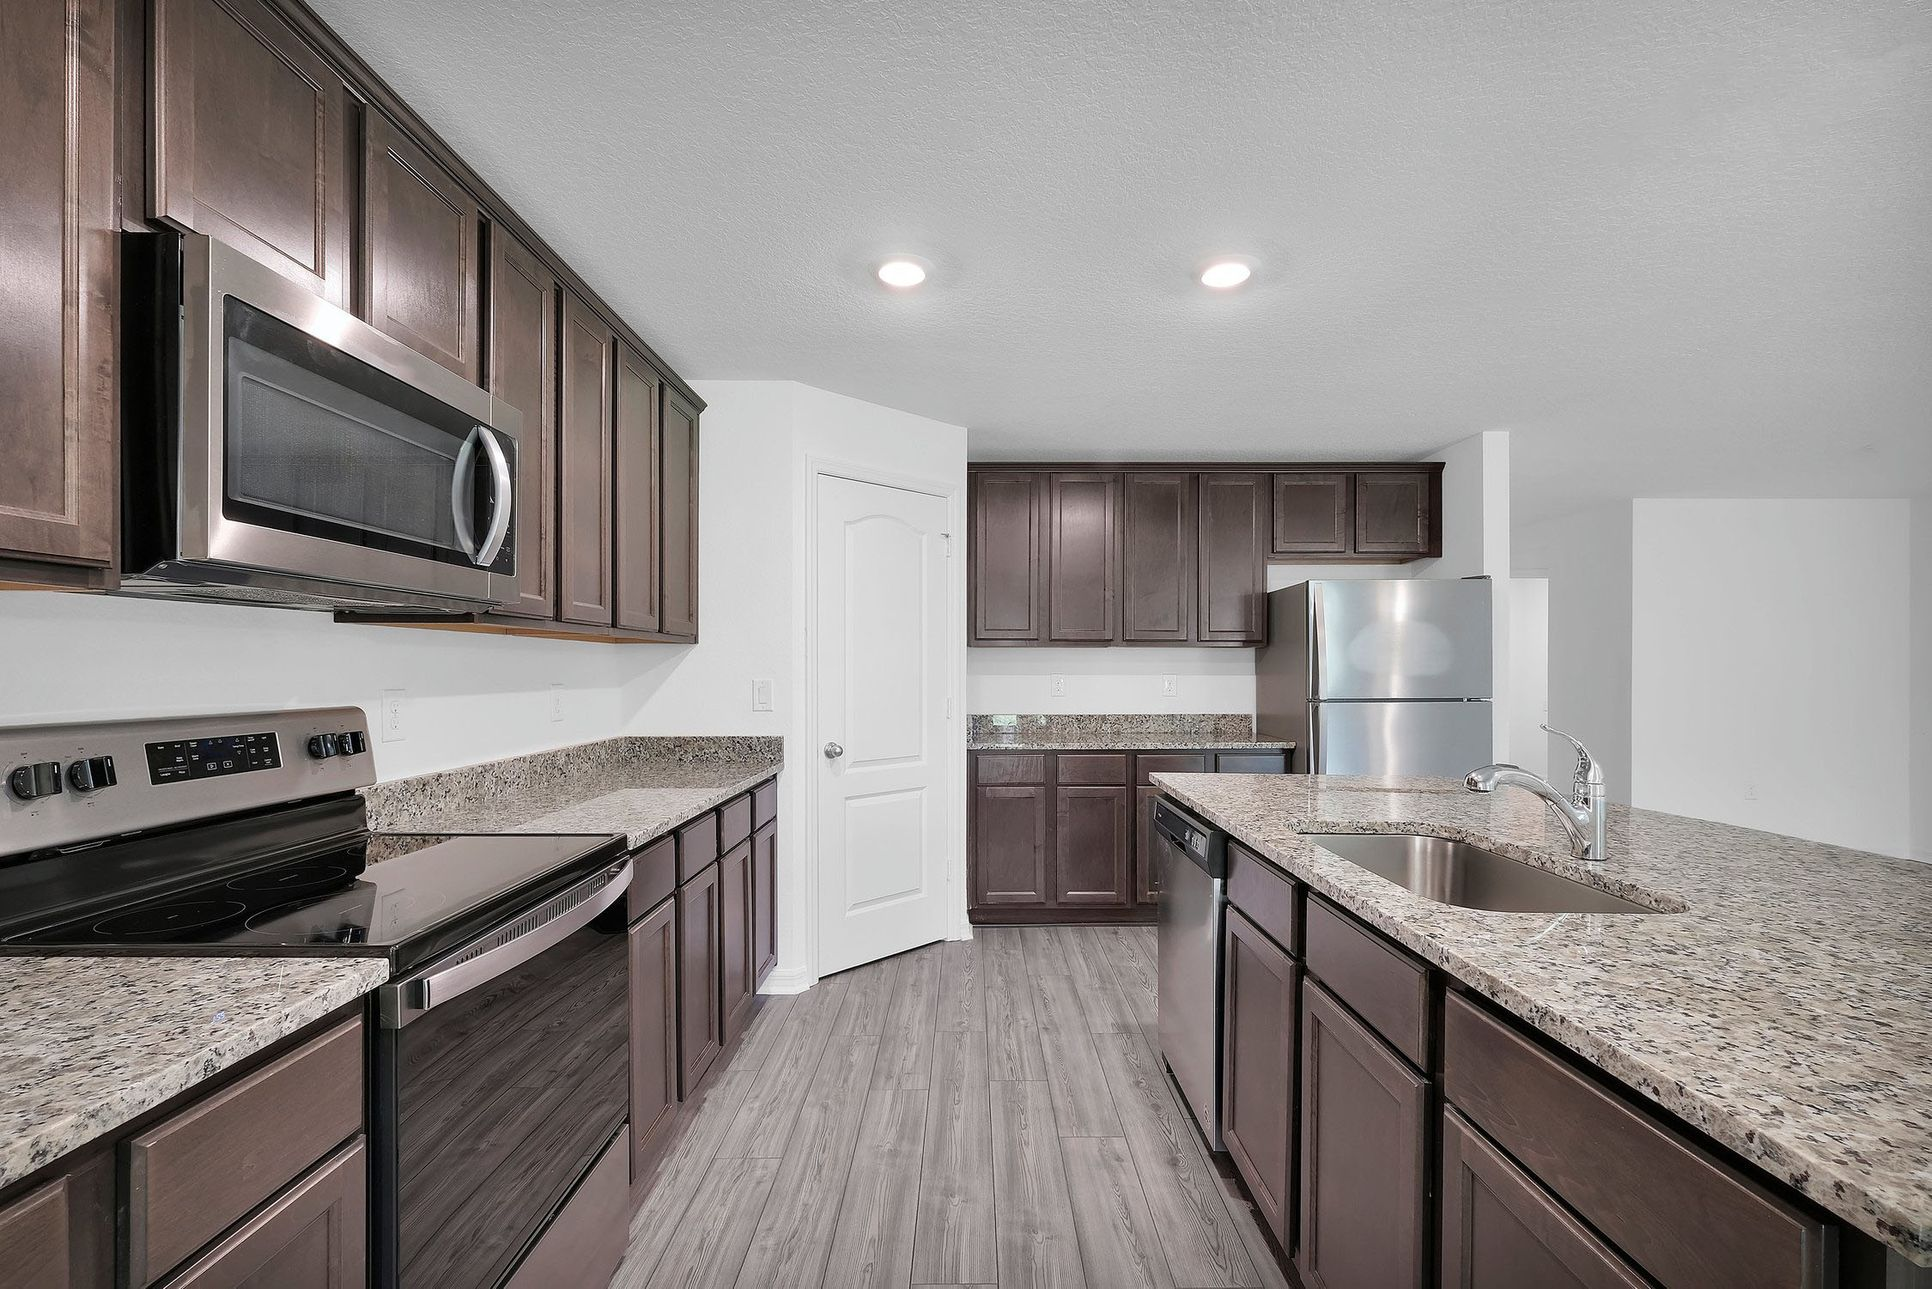 The Capri at Palm Bay:This move-in ready home features gorgeous granite countertops in the kitchen